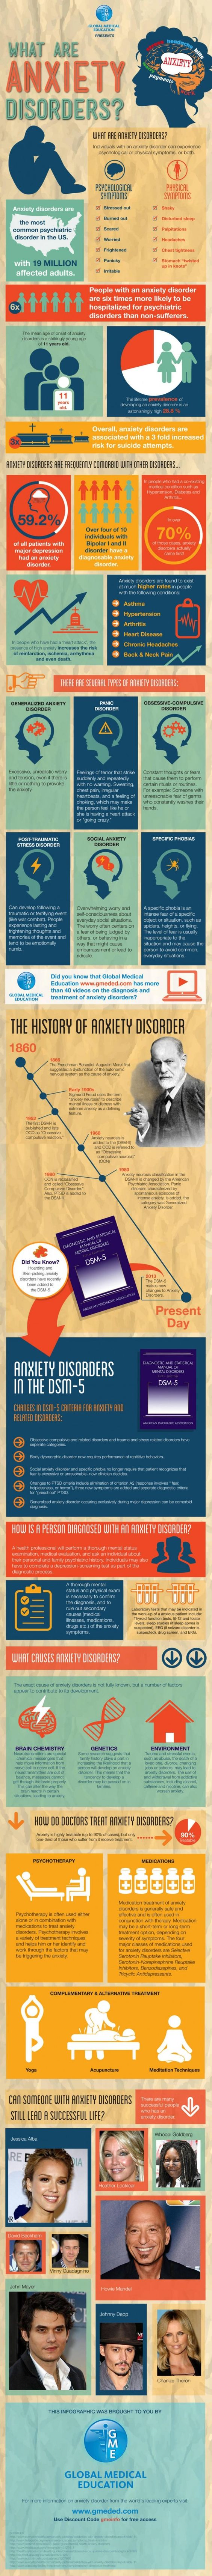 What Are Anxiety Disorders? Infographic - repinned by @PediaStaff – Please…